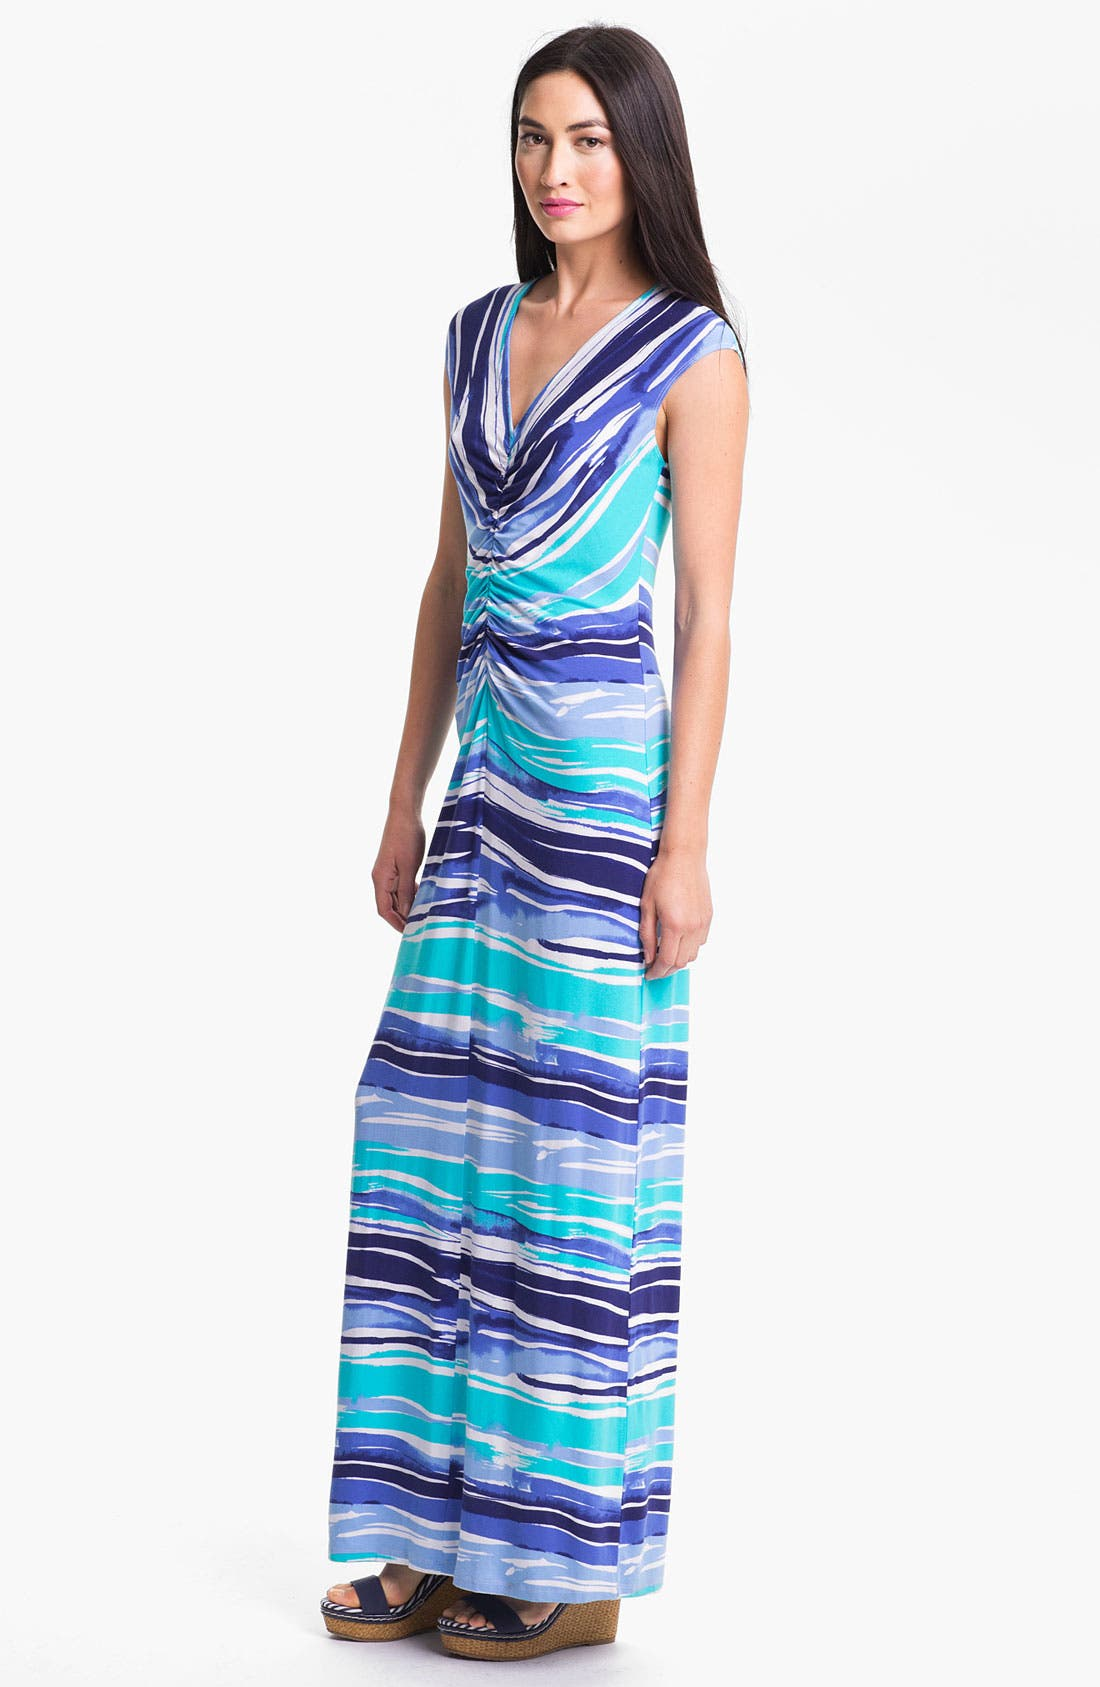 'Rising Tide' Maxi Dress,                         Main,                         color, Blue Atoll